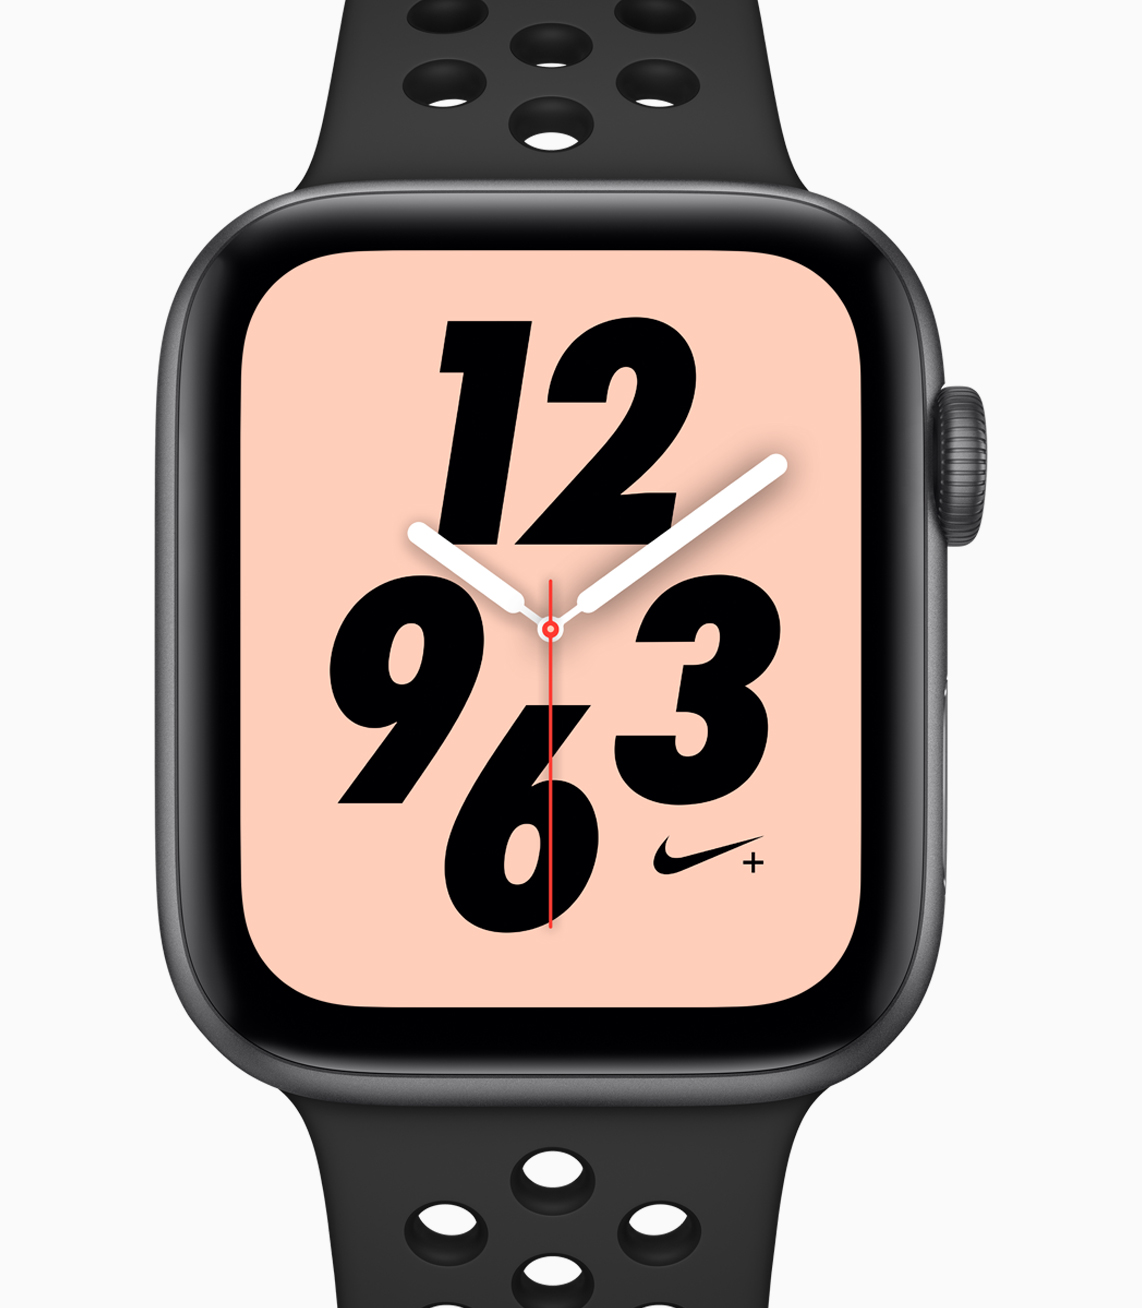 Apple Watch Series 4 - Nike